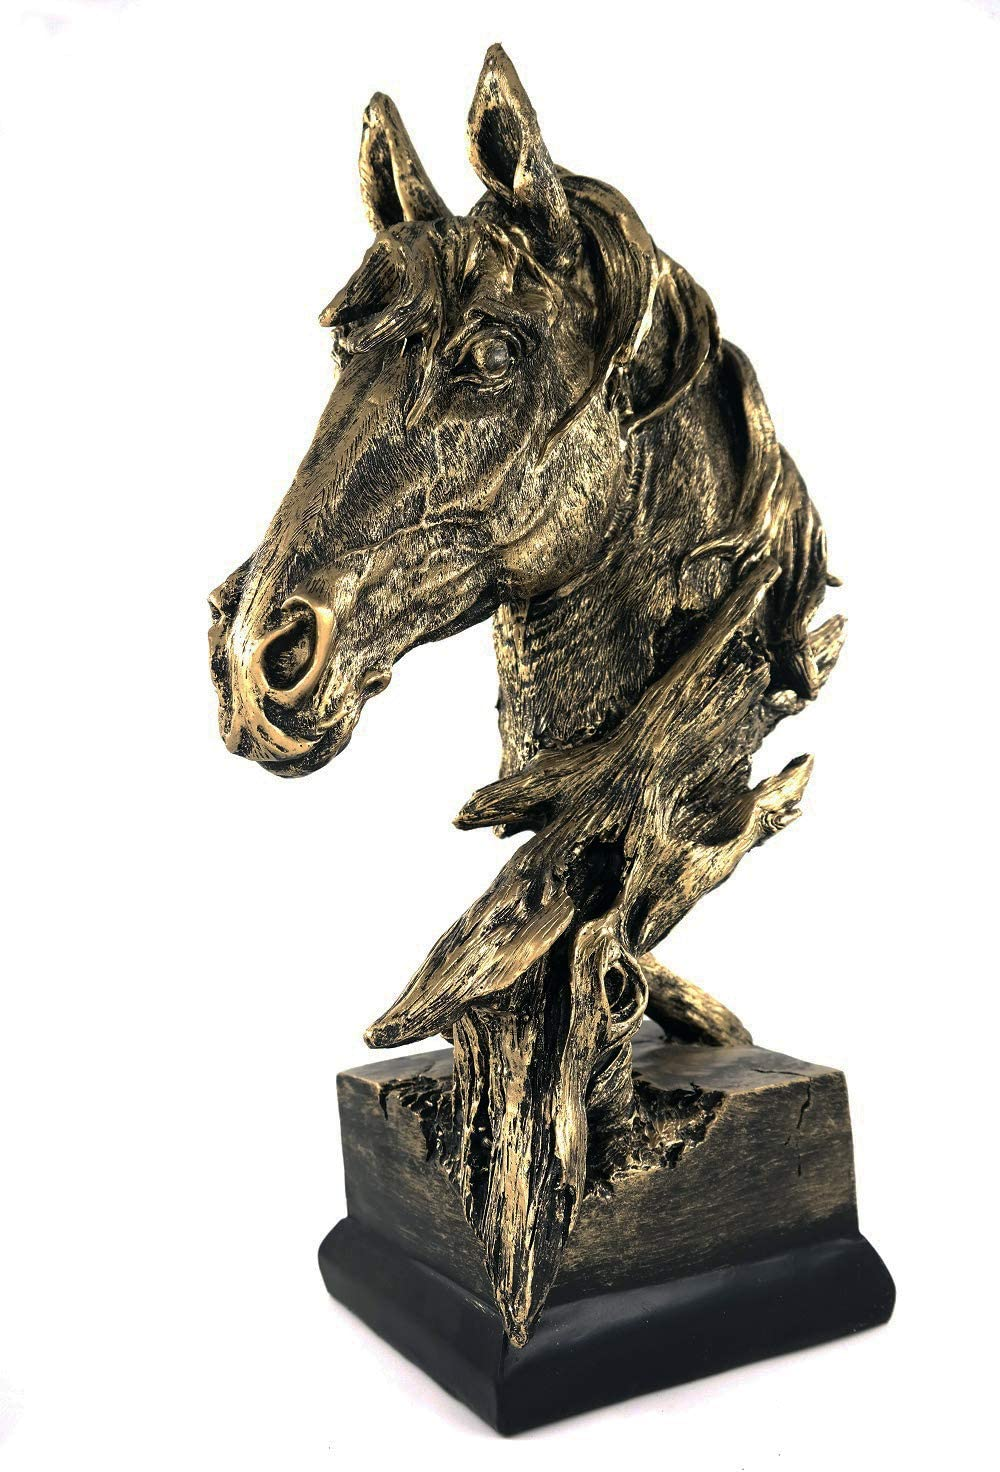 """TIPPOMG 15.35"""" Large(Antique Gold) Horse Head Statue Handmade Bust Horse Collection Animal Decoration Sculpture Home Office Wine Cabinet Bookshelf Deco Gift (Large, Retro Gold)"""